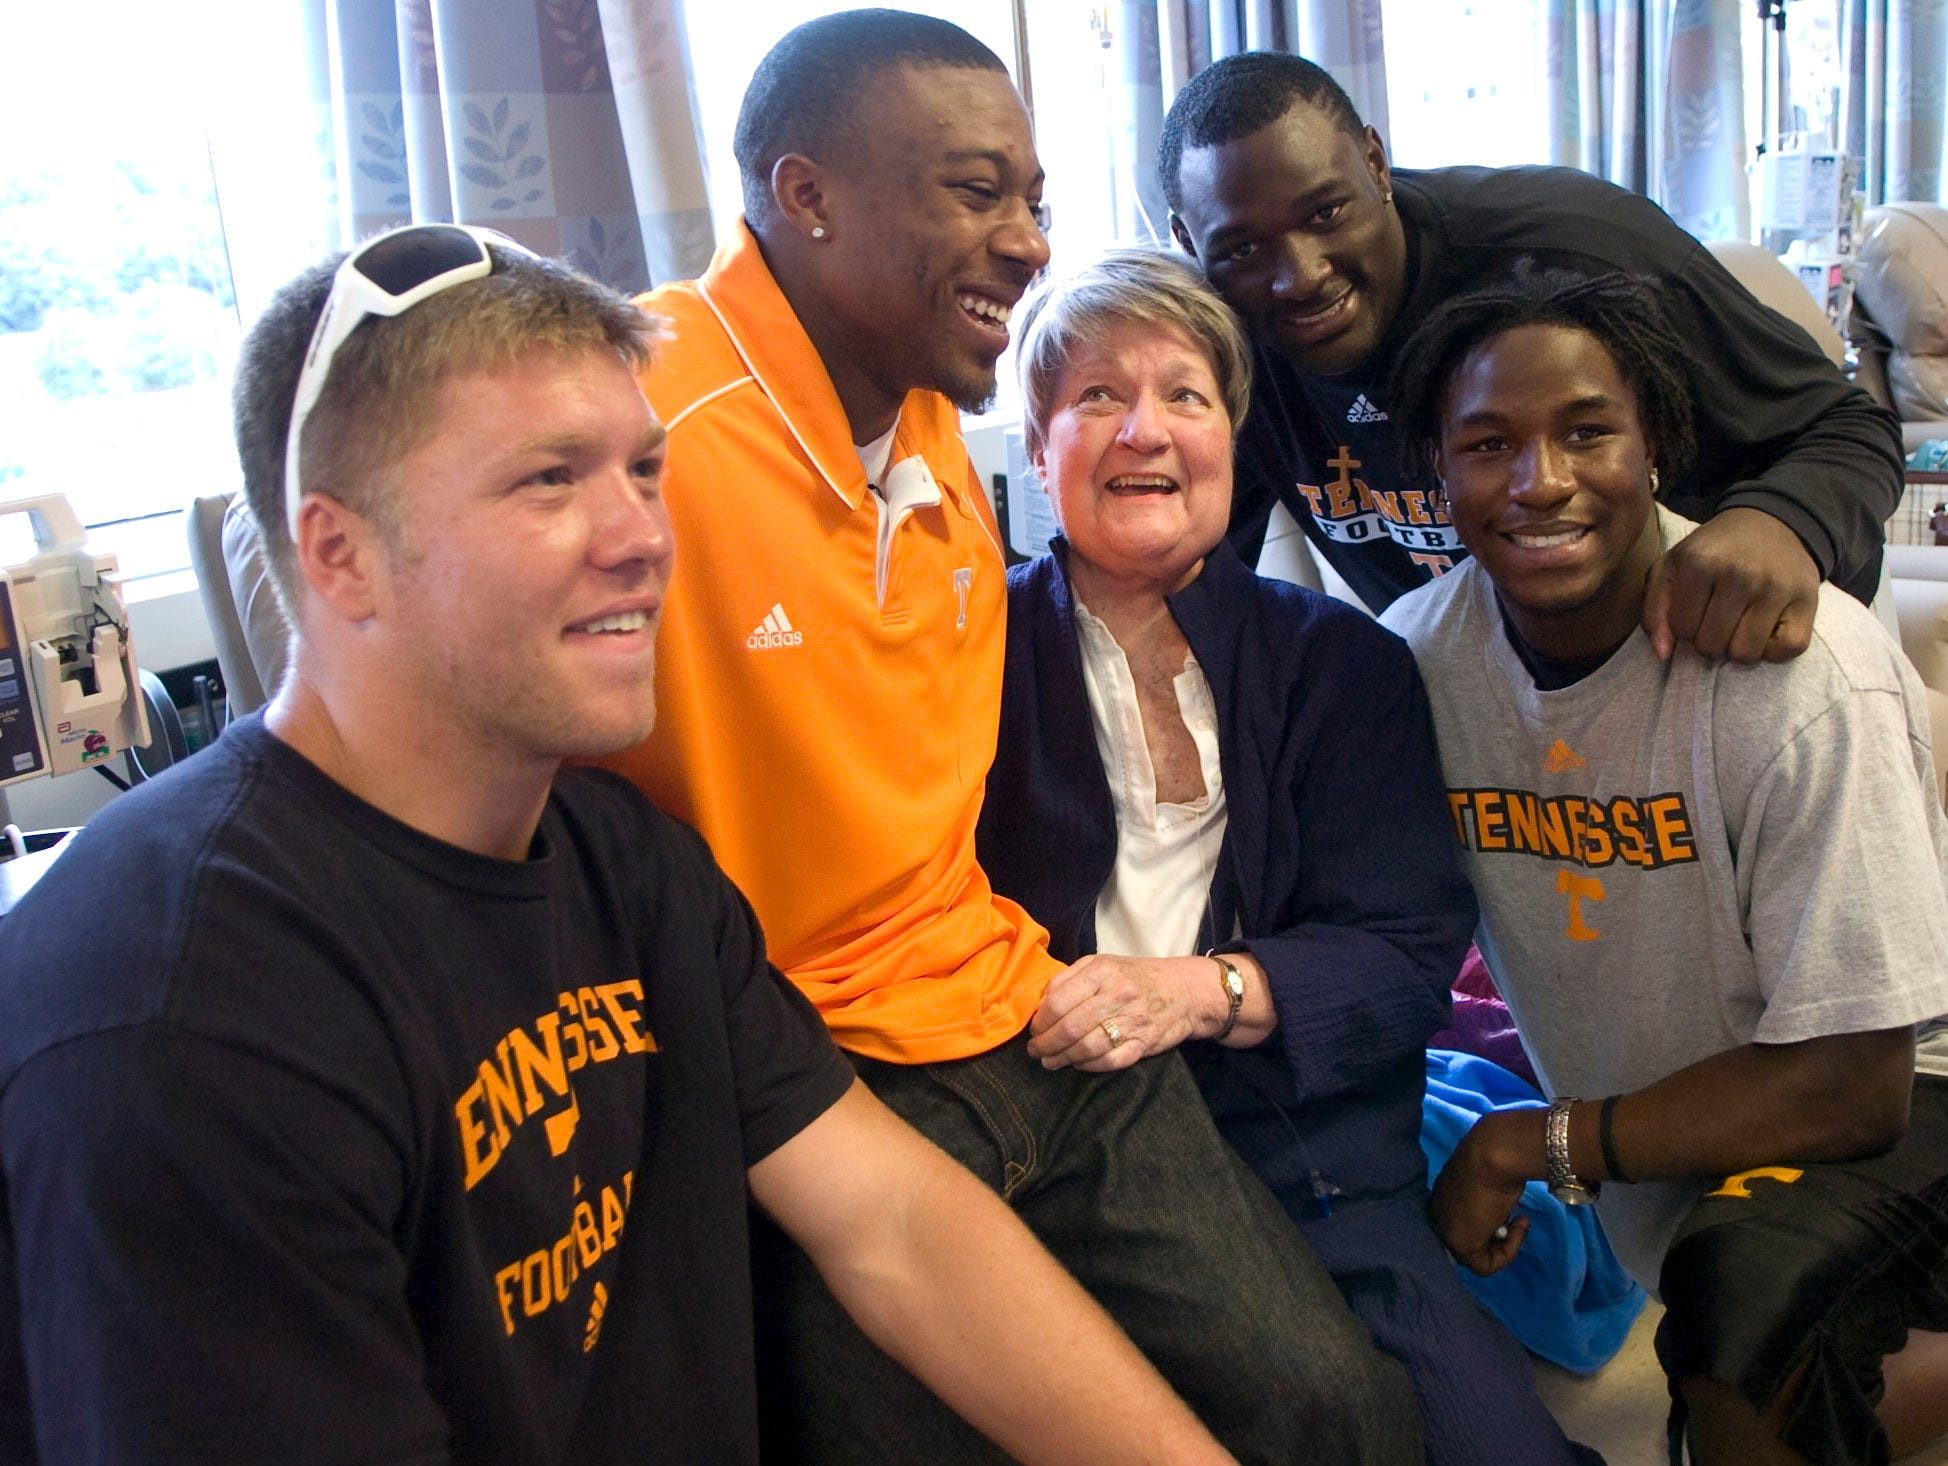 UT football players Chuck Karlosky, Eric Berry, Chris Walker and Denarius Moore, pose for a photo with cancer patient Ethel Campbell of Knoxville. The players visited patients at the UT Medical Center Cancer Institute on Wednesday.